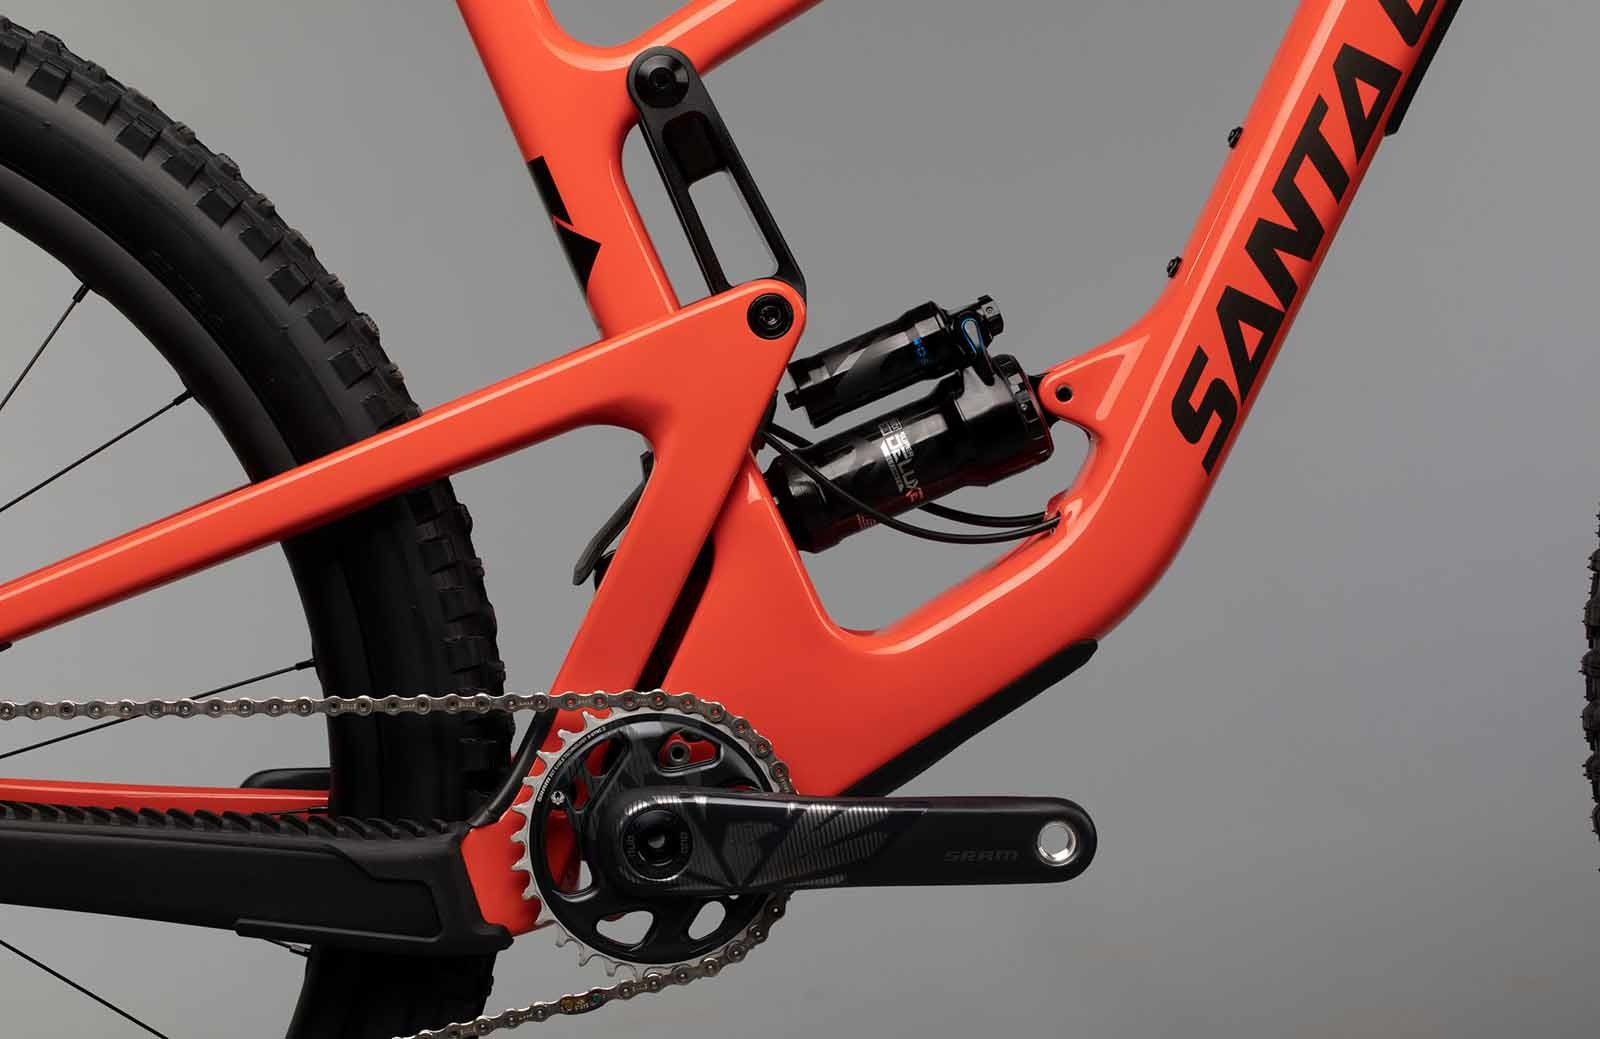 Santa Cruz Santa Cruz Hightower - R / Carbon / 29 (2021)